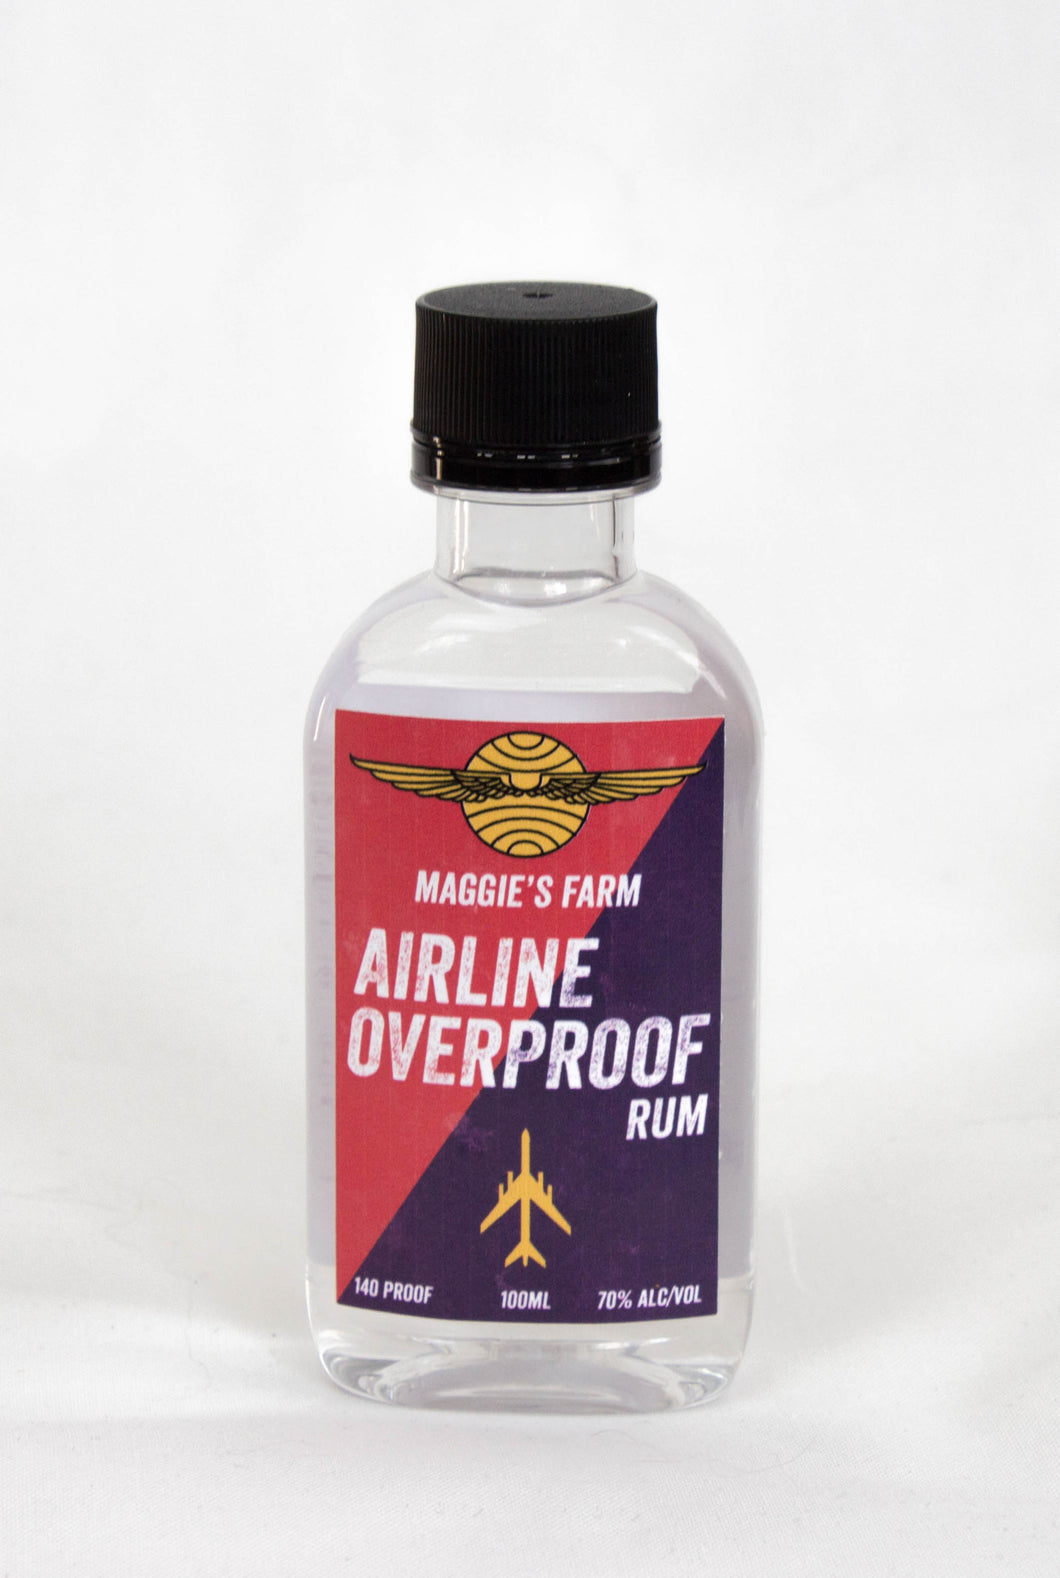 Maggie's Farm Airline Overproof Rum - 100ml - 140proof